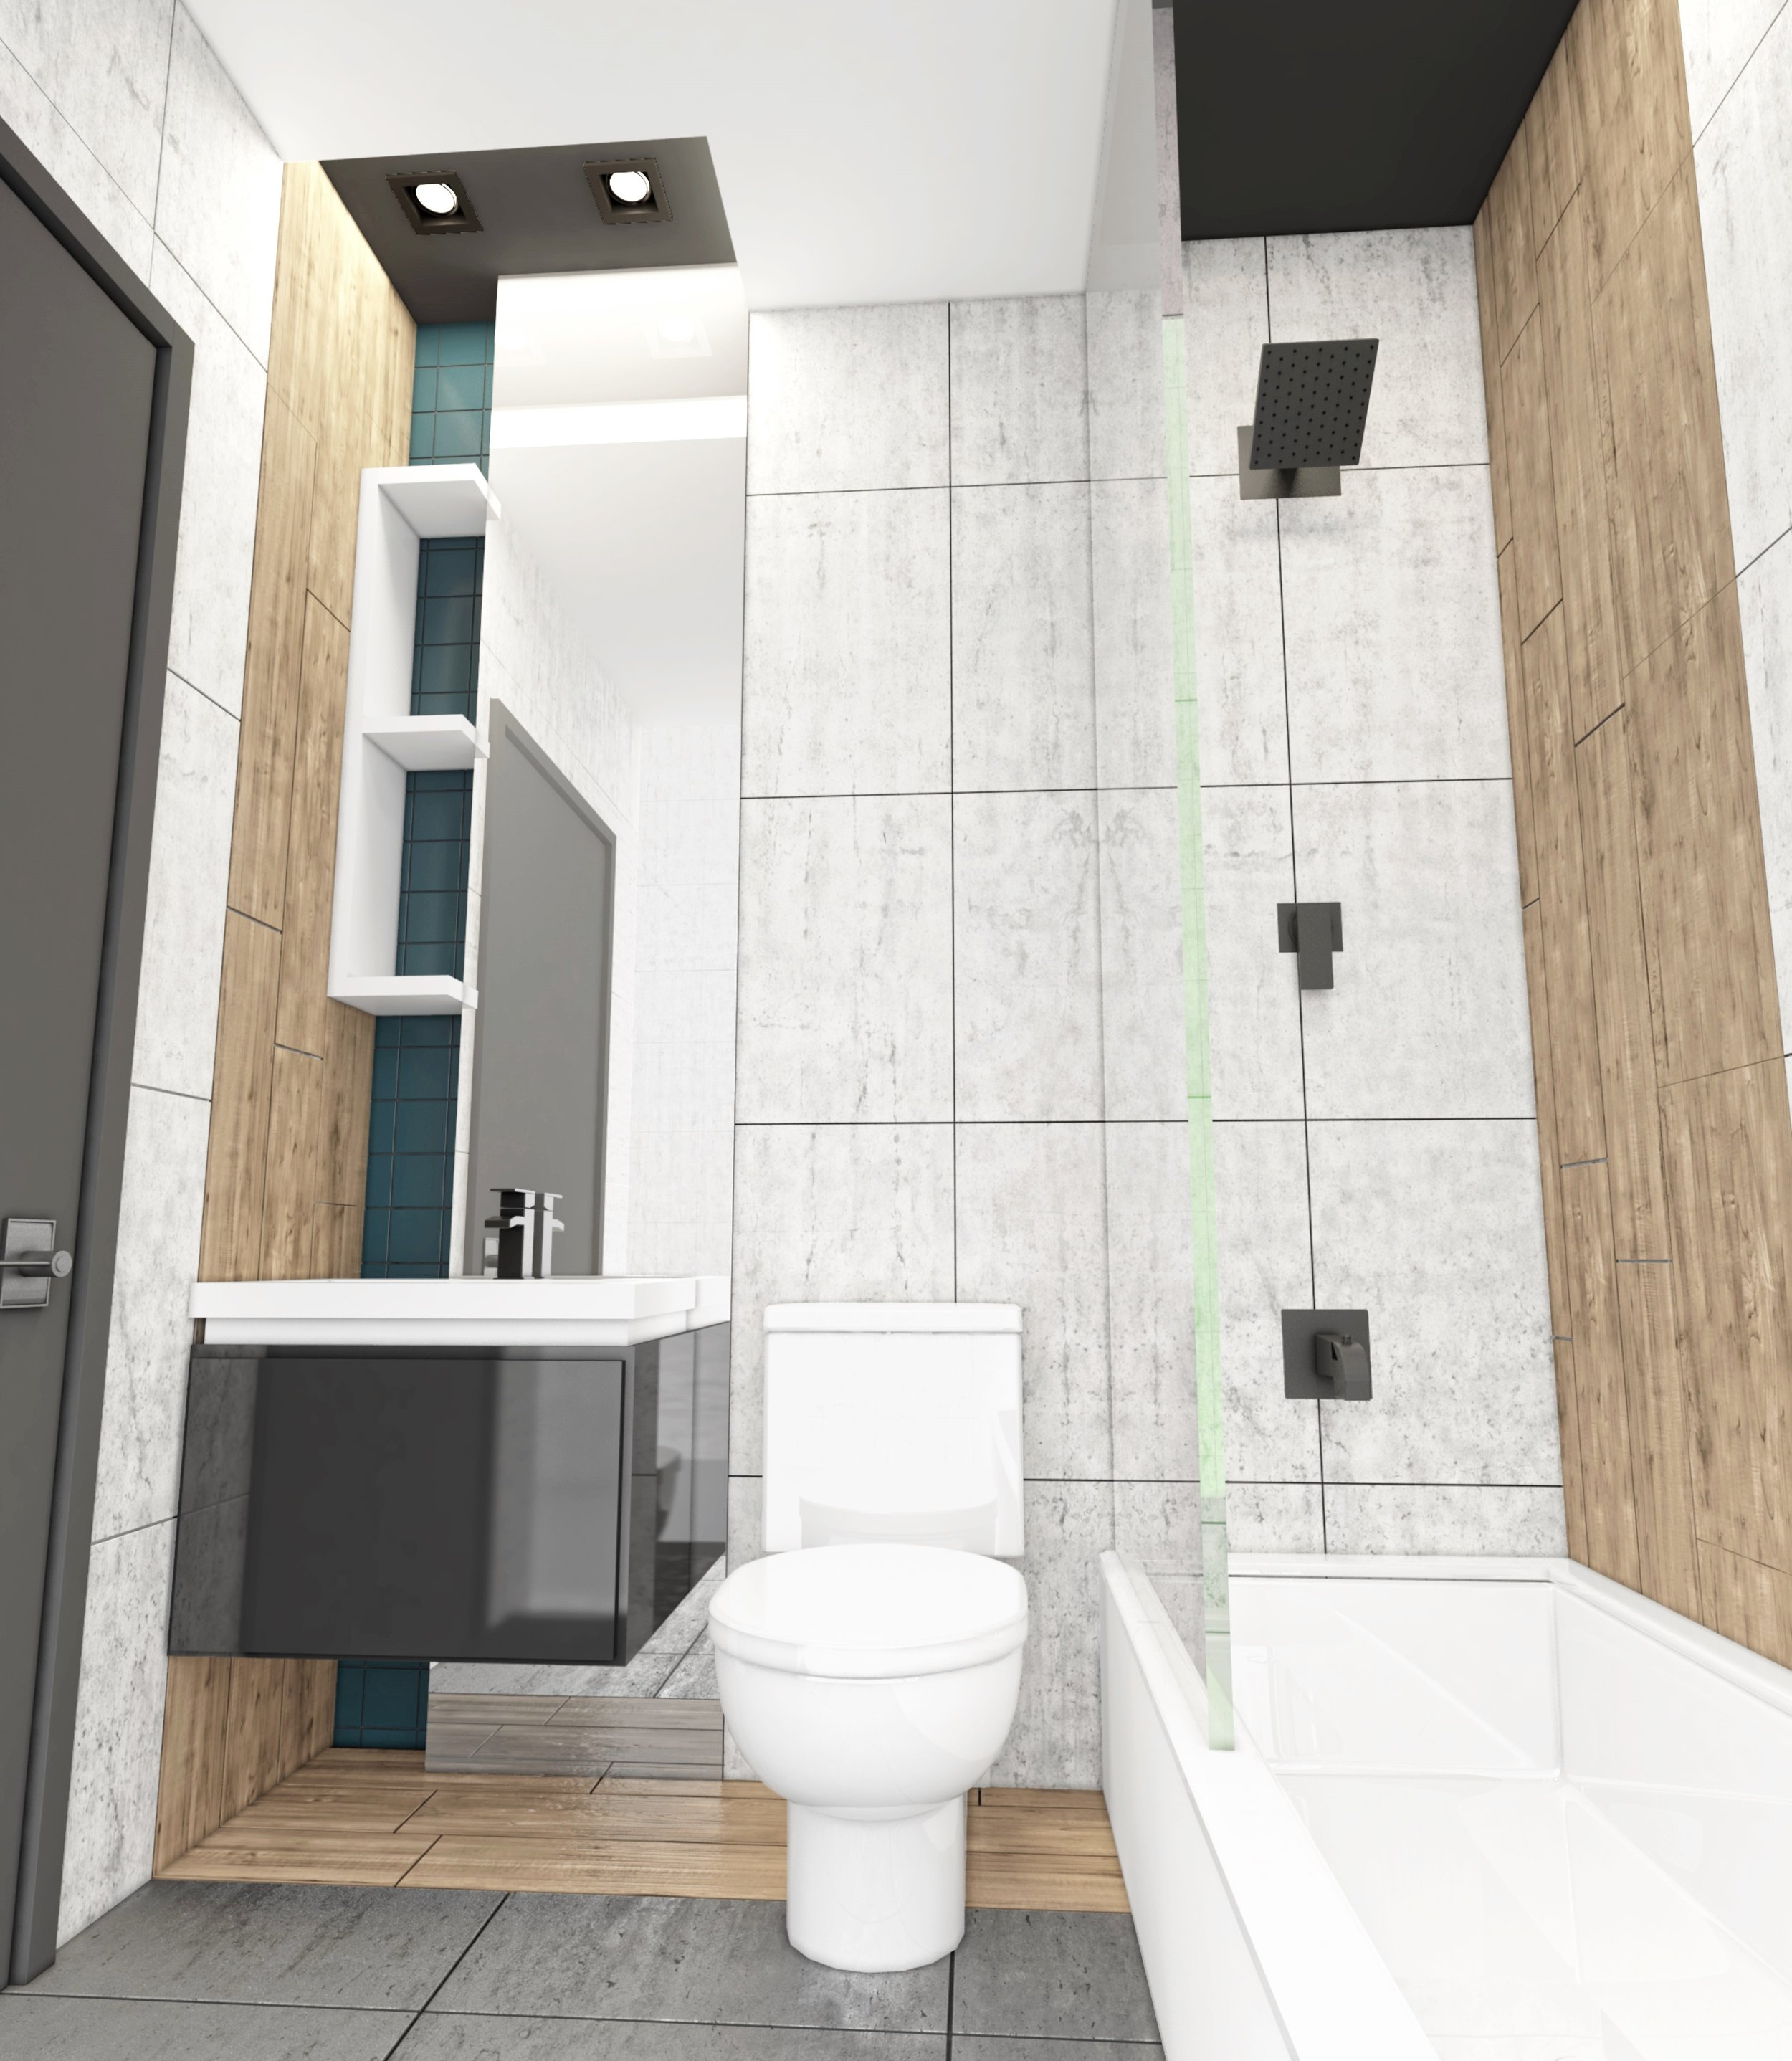 675_Grand_Street_Bathroom_Rendering_2016.02.10.jpg